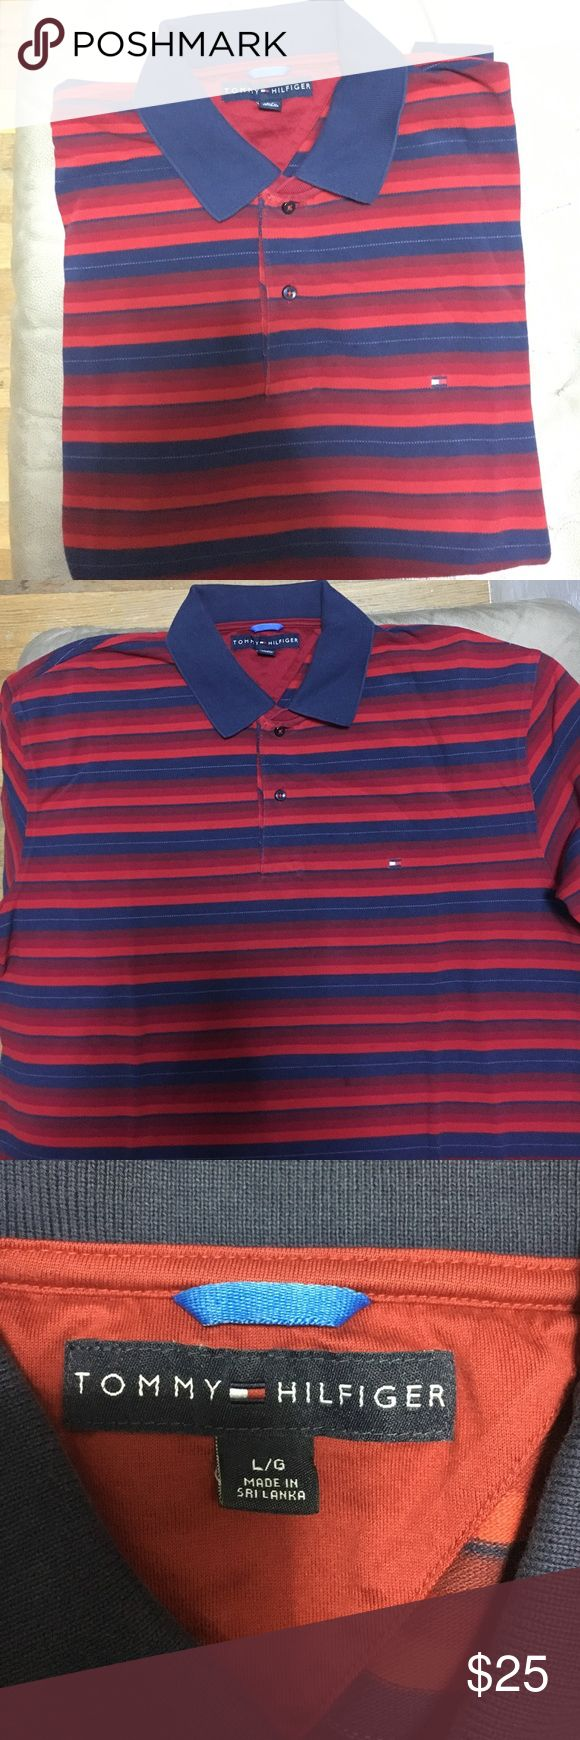 Men's Tommy Hilfiger polo Short sleeve polo from Tommy Hilfiger. Worn once. Offers! Tommy Hilfiger Shirts Polos